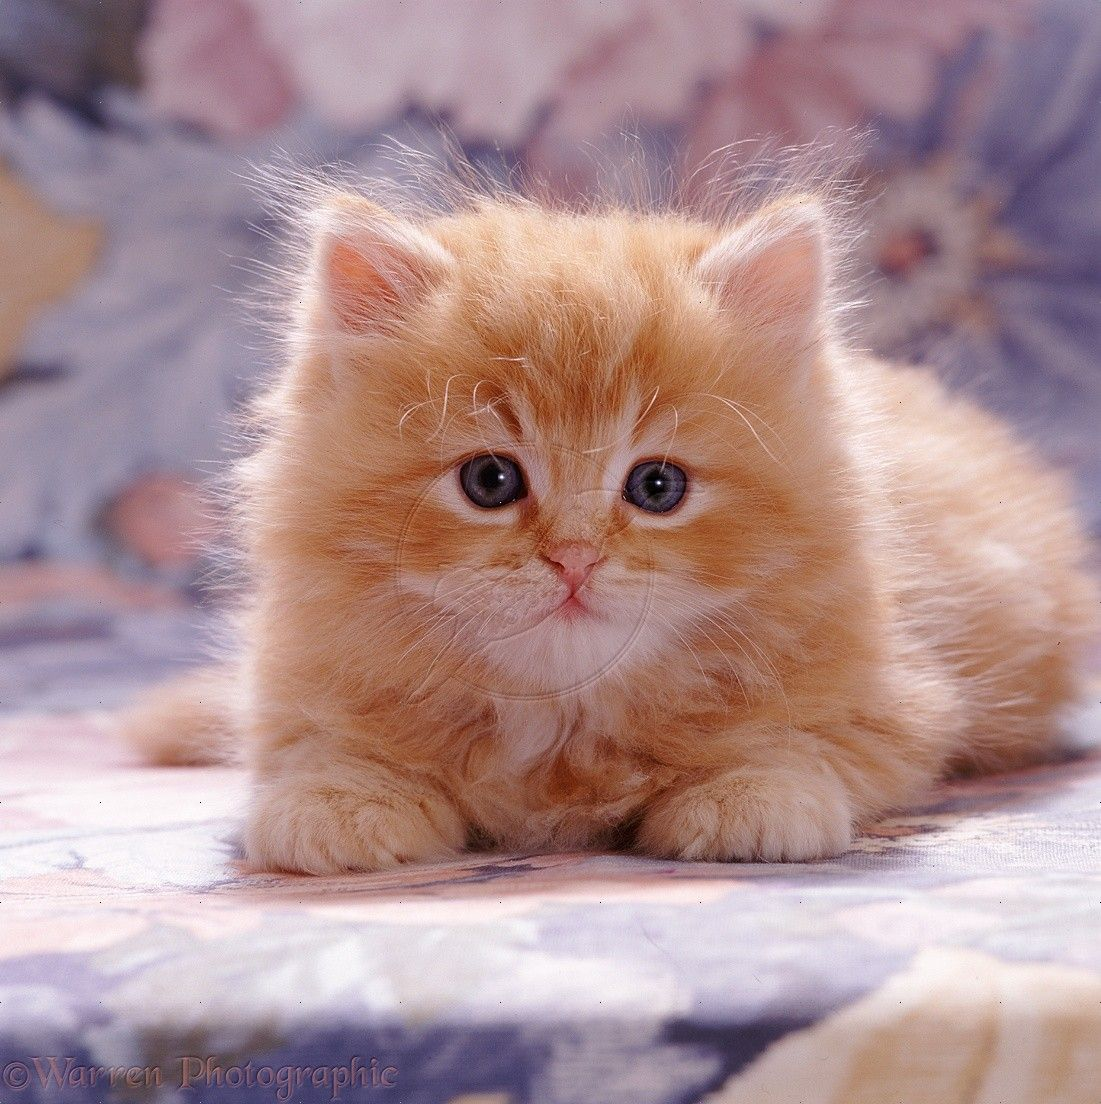 Fluffy Ginger Male Kitten 7 Weeks Old Even Cats Are Better Ginger Cute Cats And Dogs Fluffy Kittens Gorgeous Cats